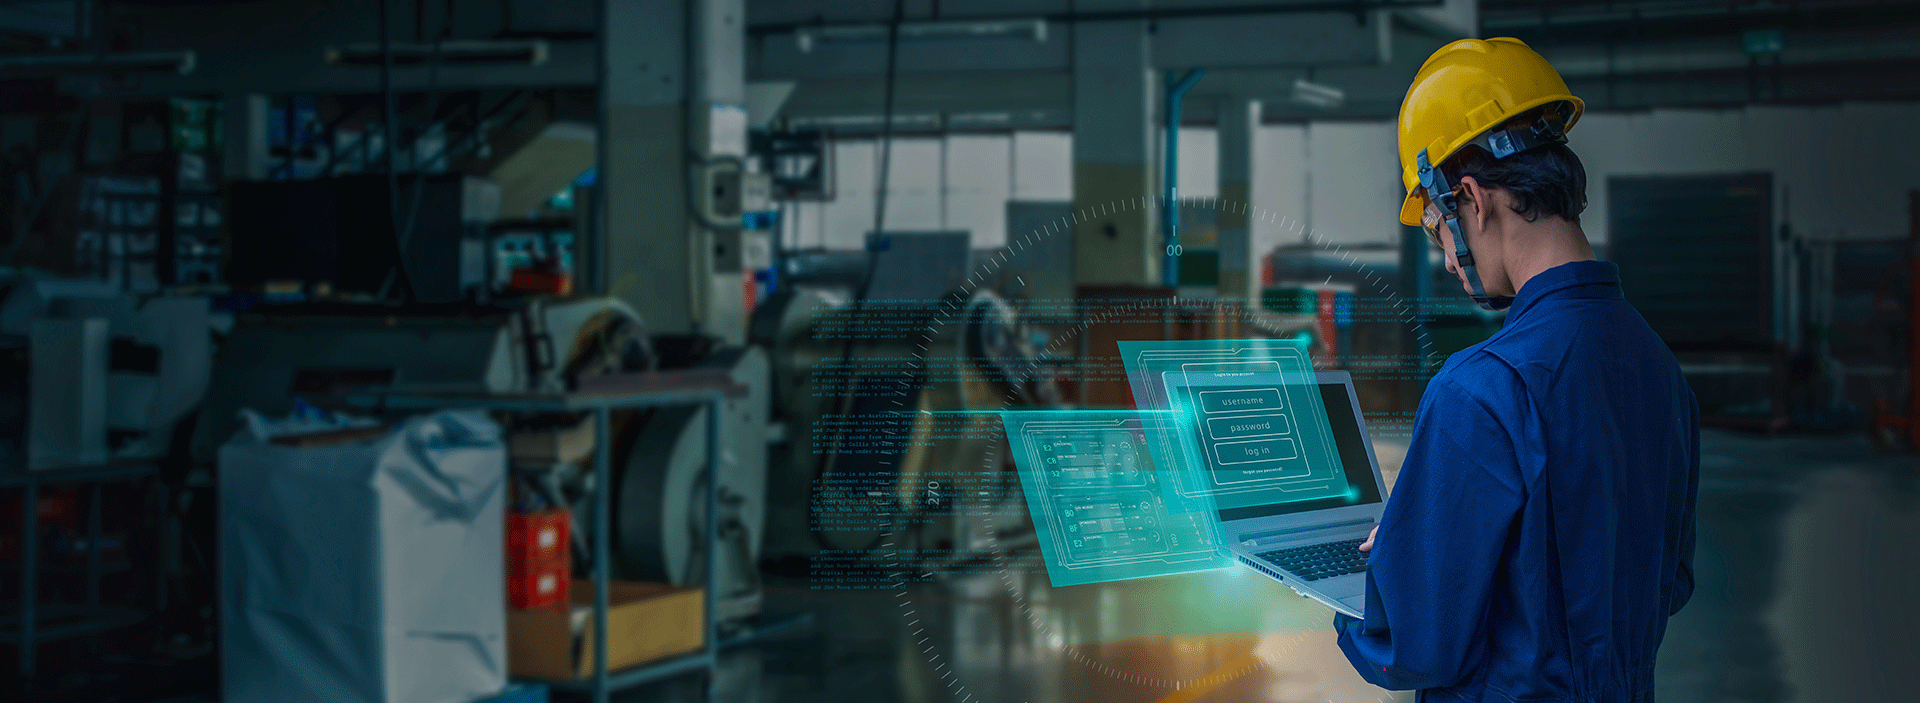 Big Data in manufacturing made simple: Trends, tips, success stories